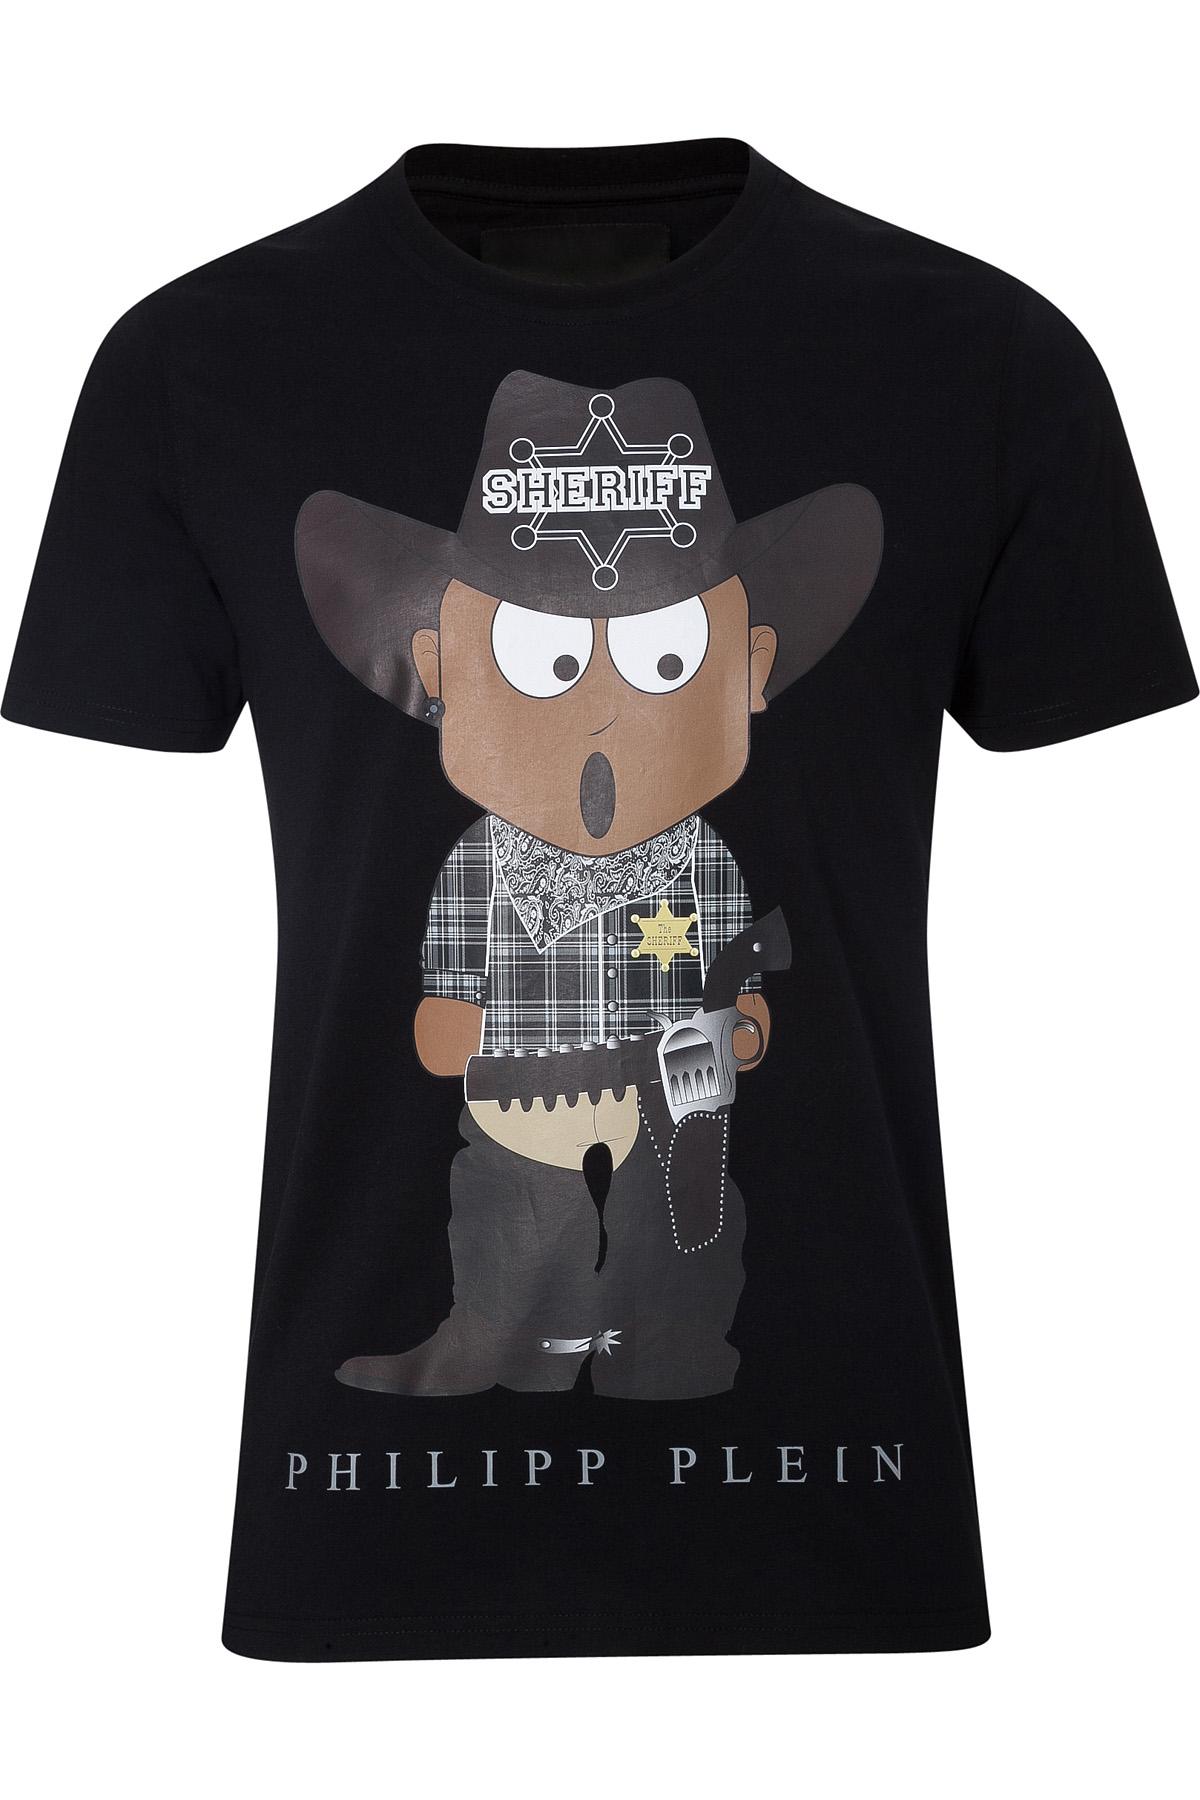 philipp plein t shirt modelleri maslak outlet blog. Black Bedroom Furniture Sets. Home Design Ideas